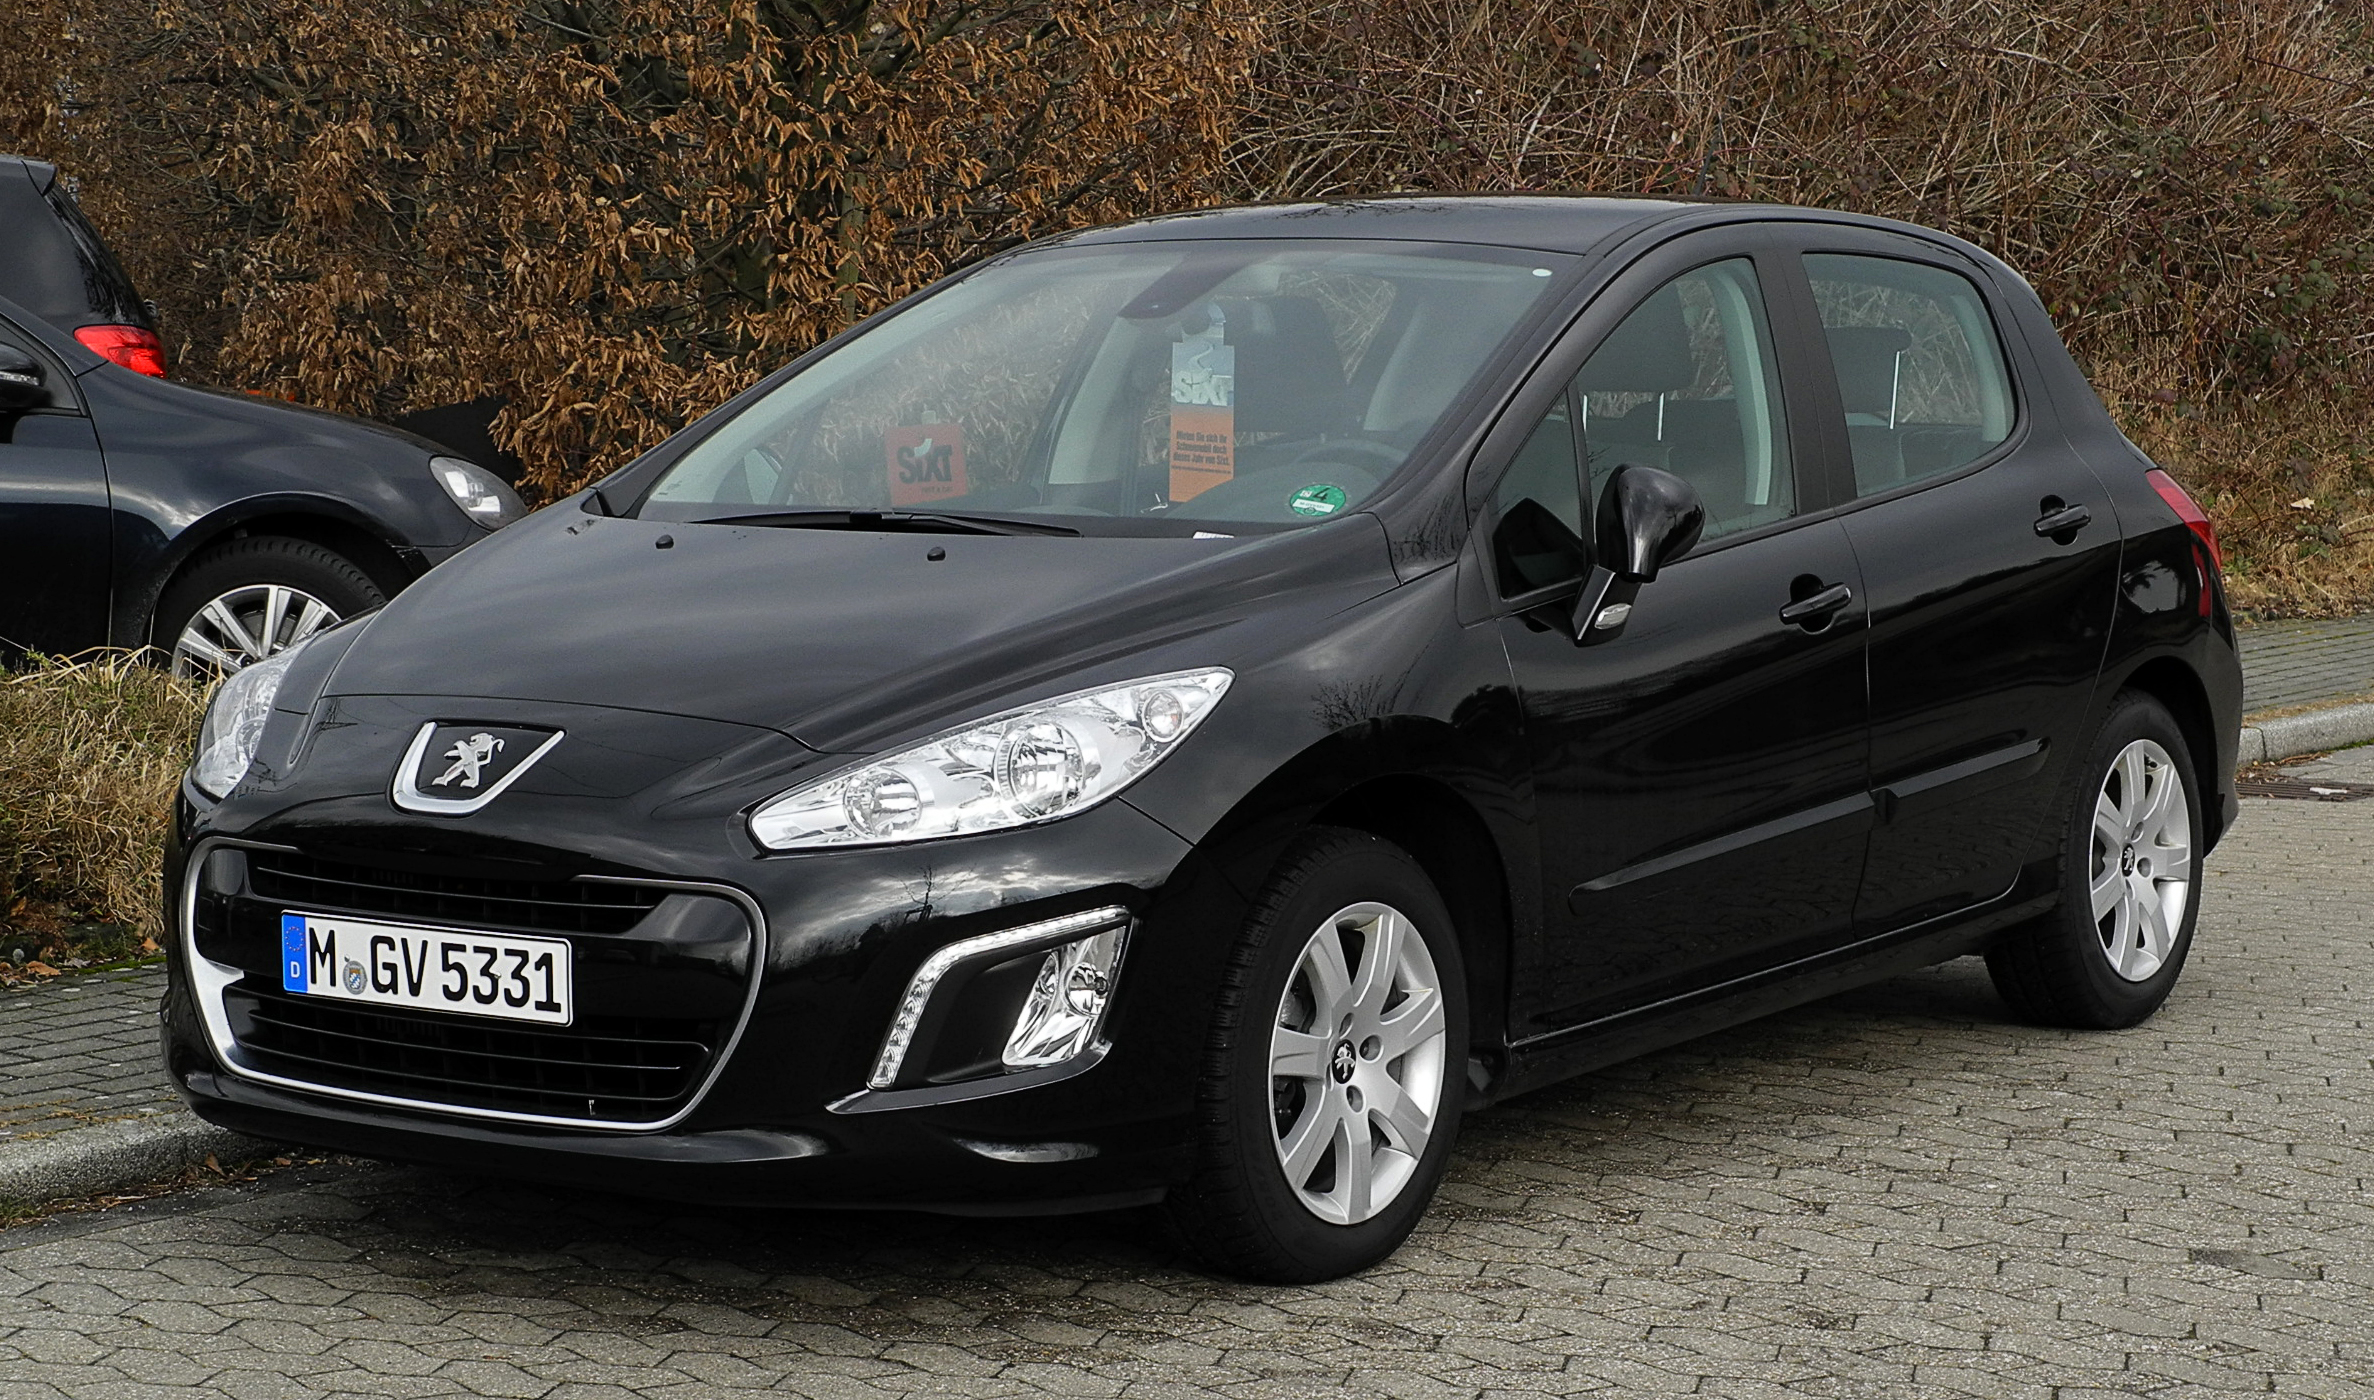 file peugeot 308 e hdi fap 110 stop start allure facelift frontansicht 25 februar 2012. Black Bedroom Furniture Sets. Home Design Ideas